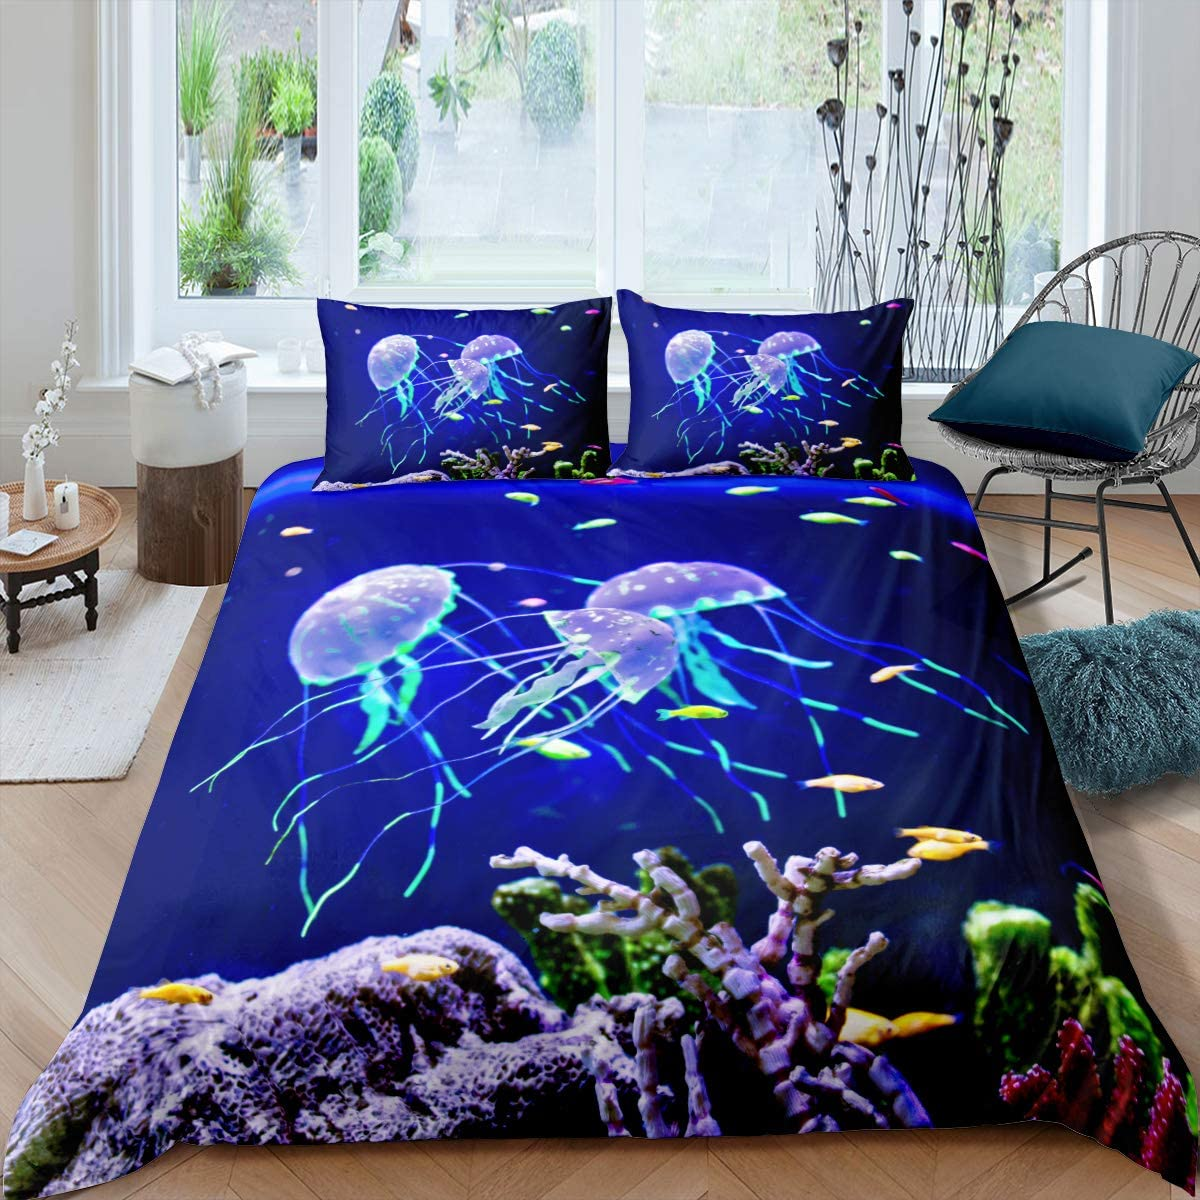 Erosebridal 3D Jellyfish Bedding Set 3 Piece Queen Size Jellyfish Printed Duvet Cover Soft Breathable Comforter Cover for Adult Teens Kids Boys Ocean Theme Bedspread Sea Coral Pattern Decor Quilt Set